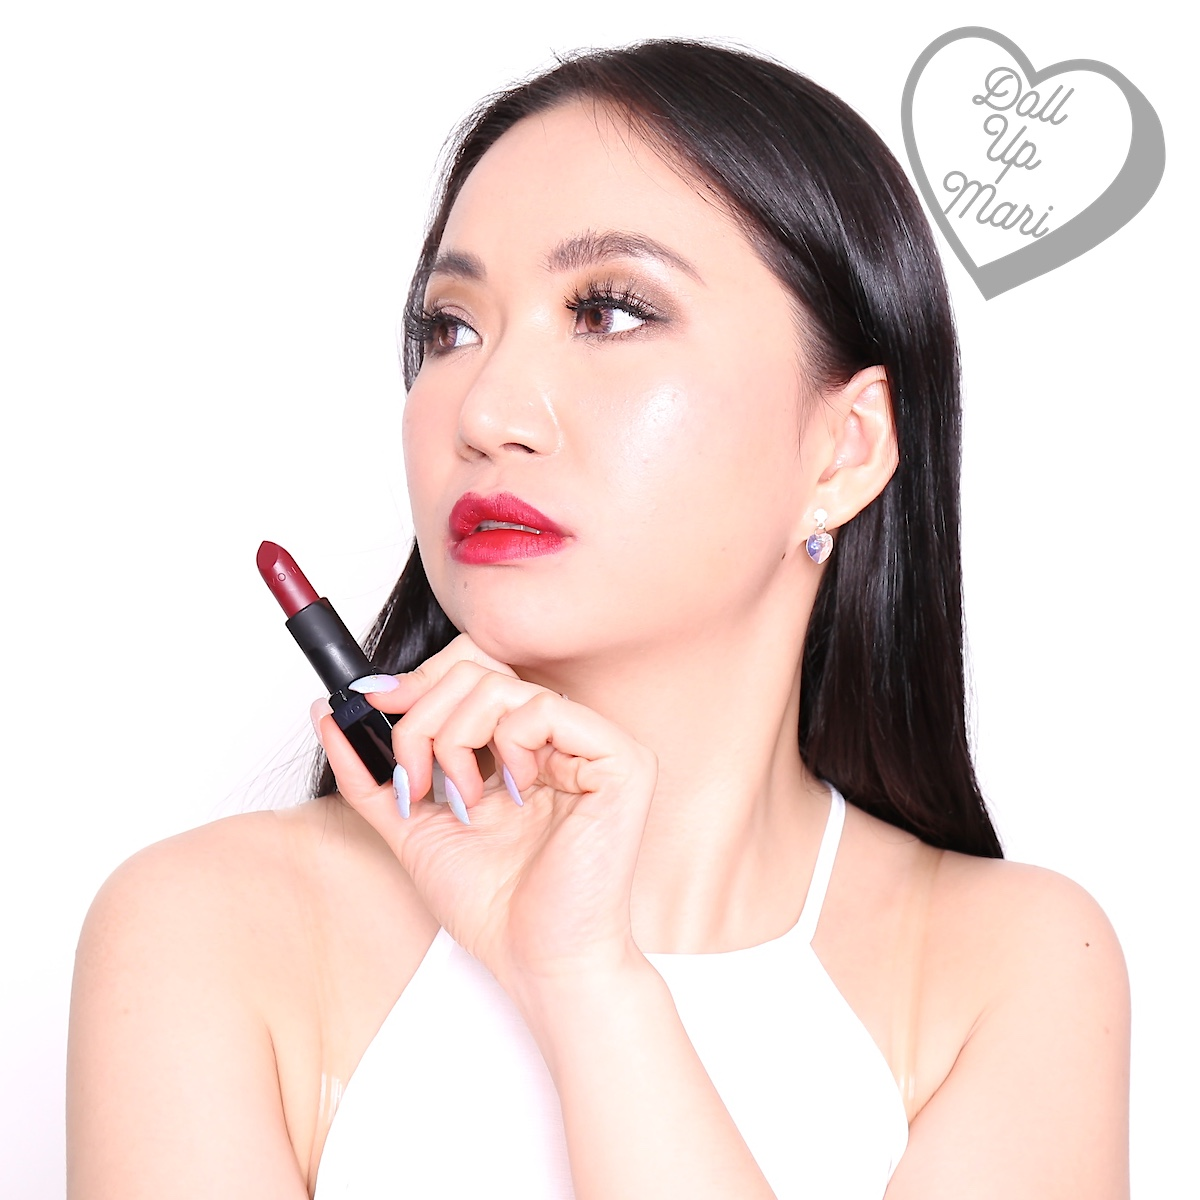 Mari wearing Wild Cherry shade of AVON Perfectly Matte Lipstick